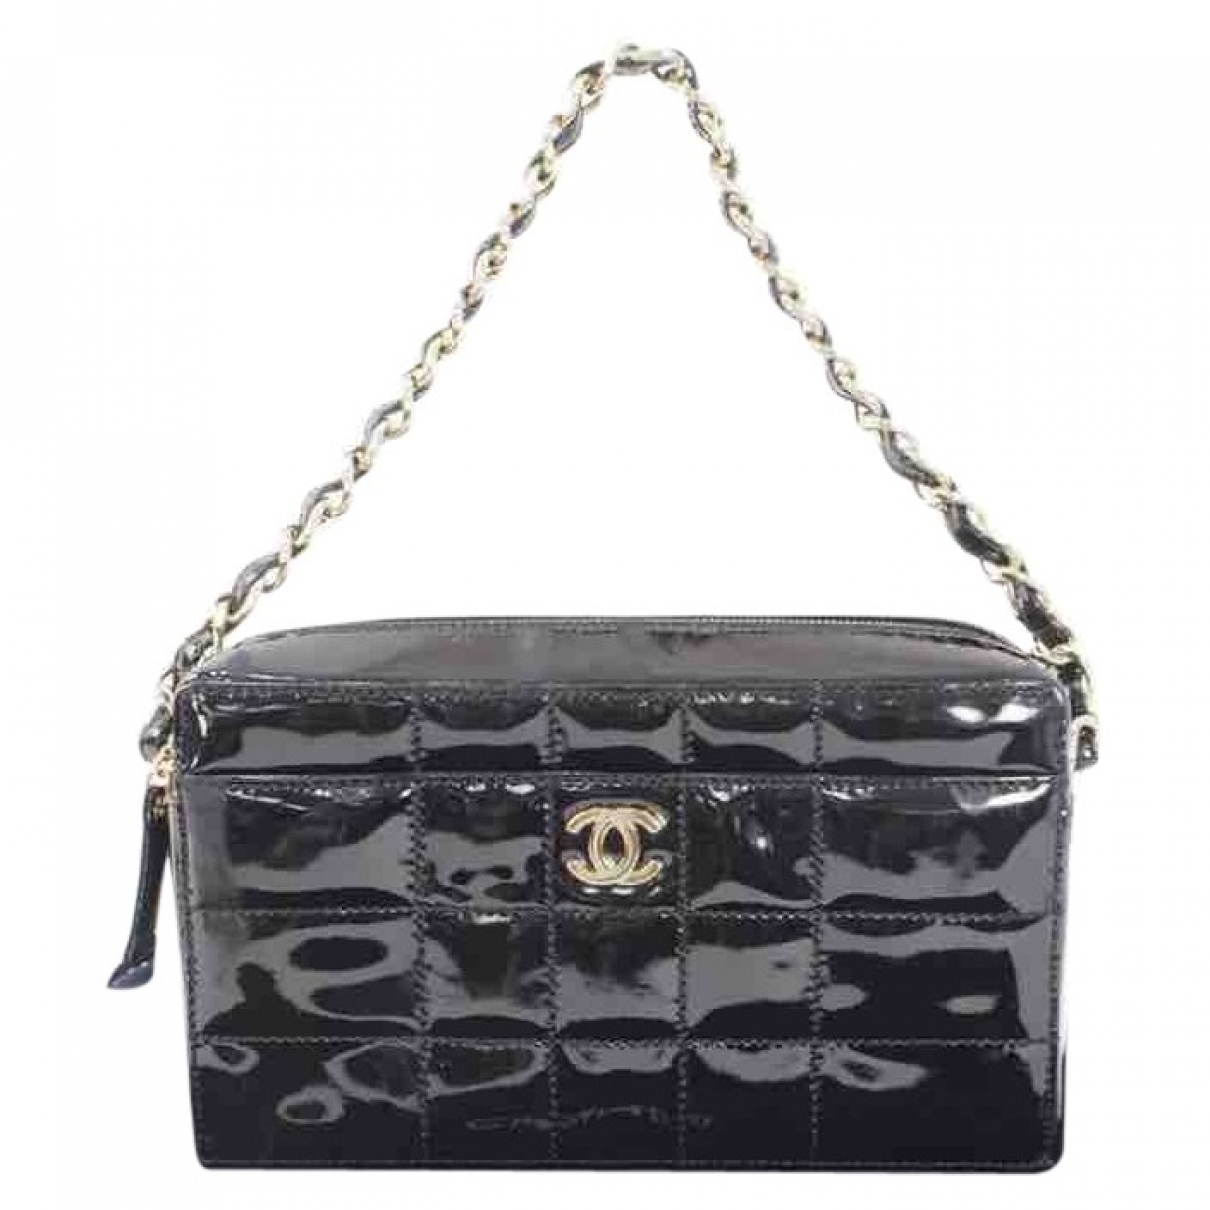 Chanel \N Black Patent leather handbag for Women \N